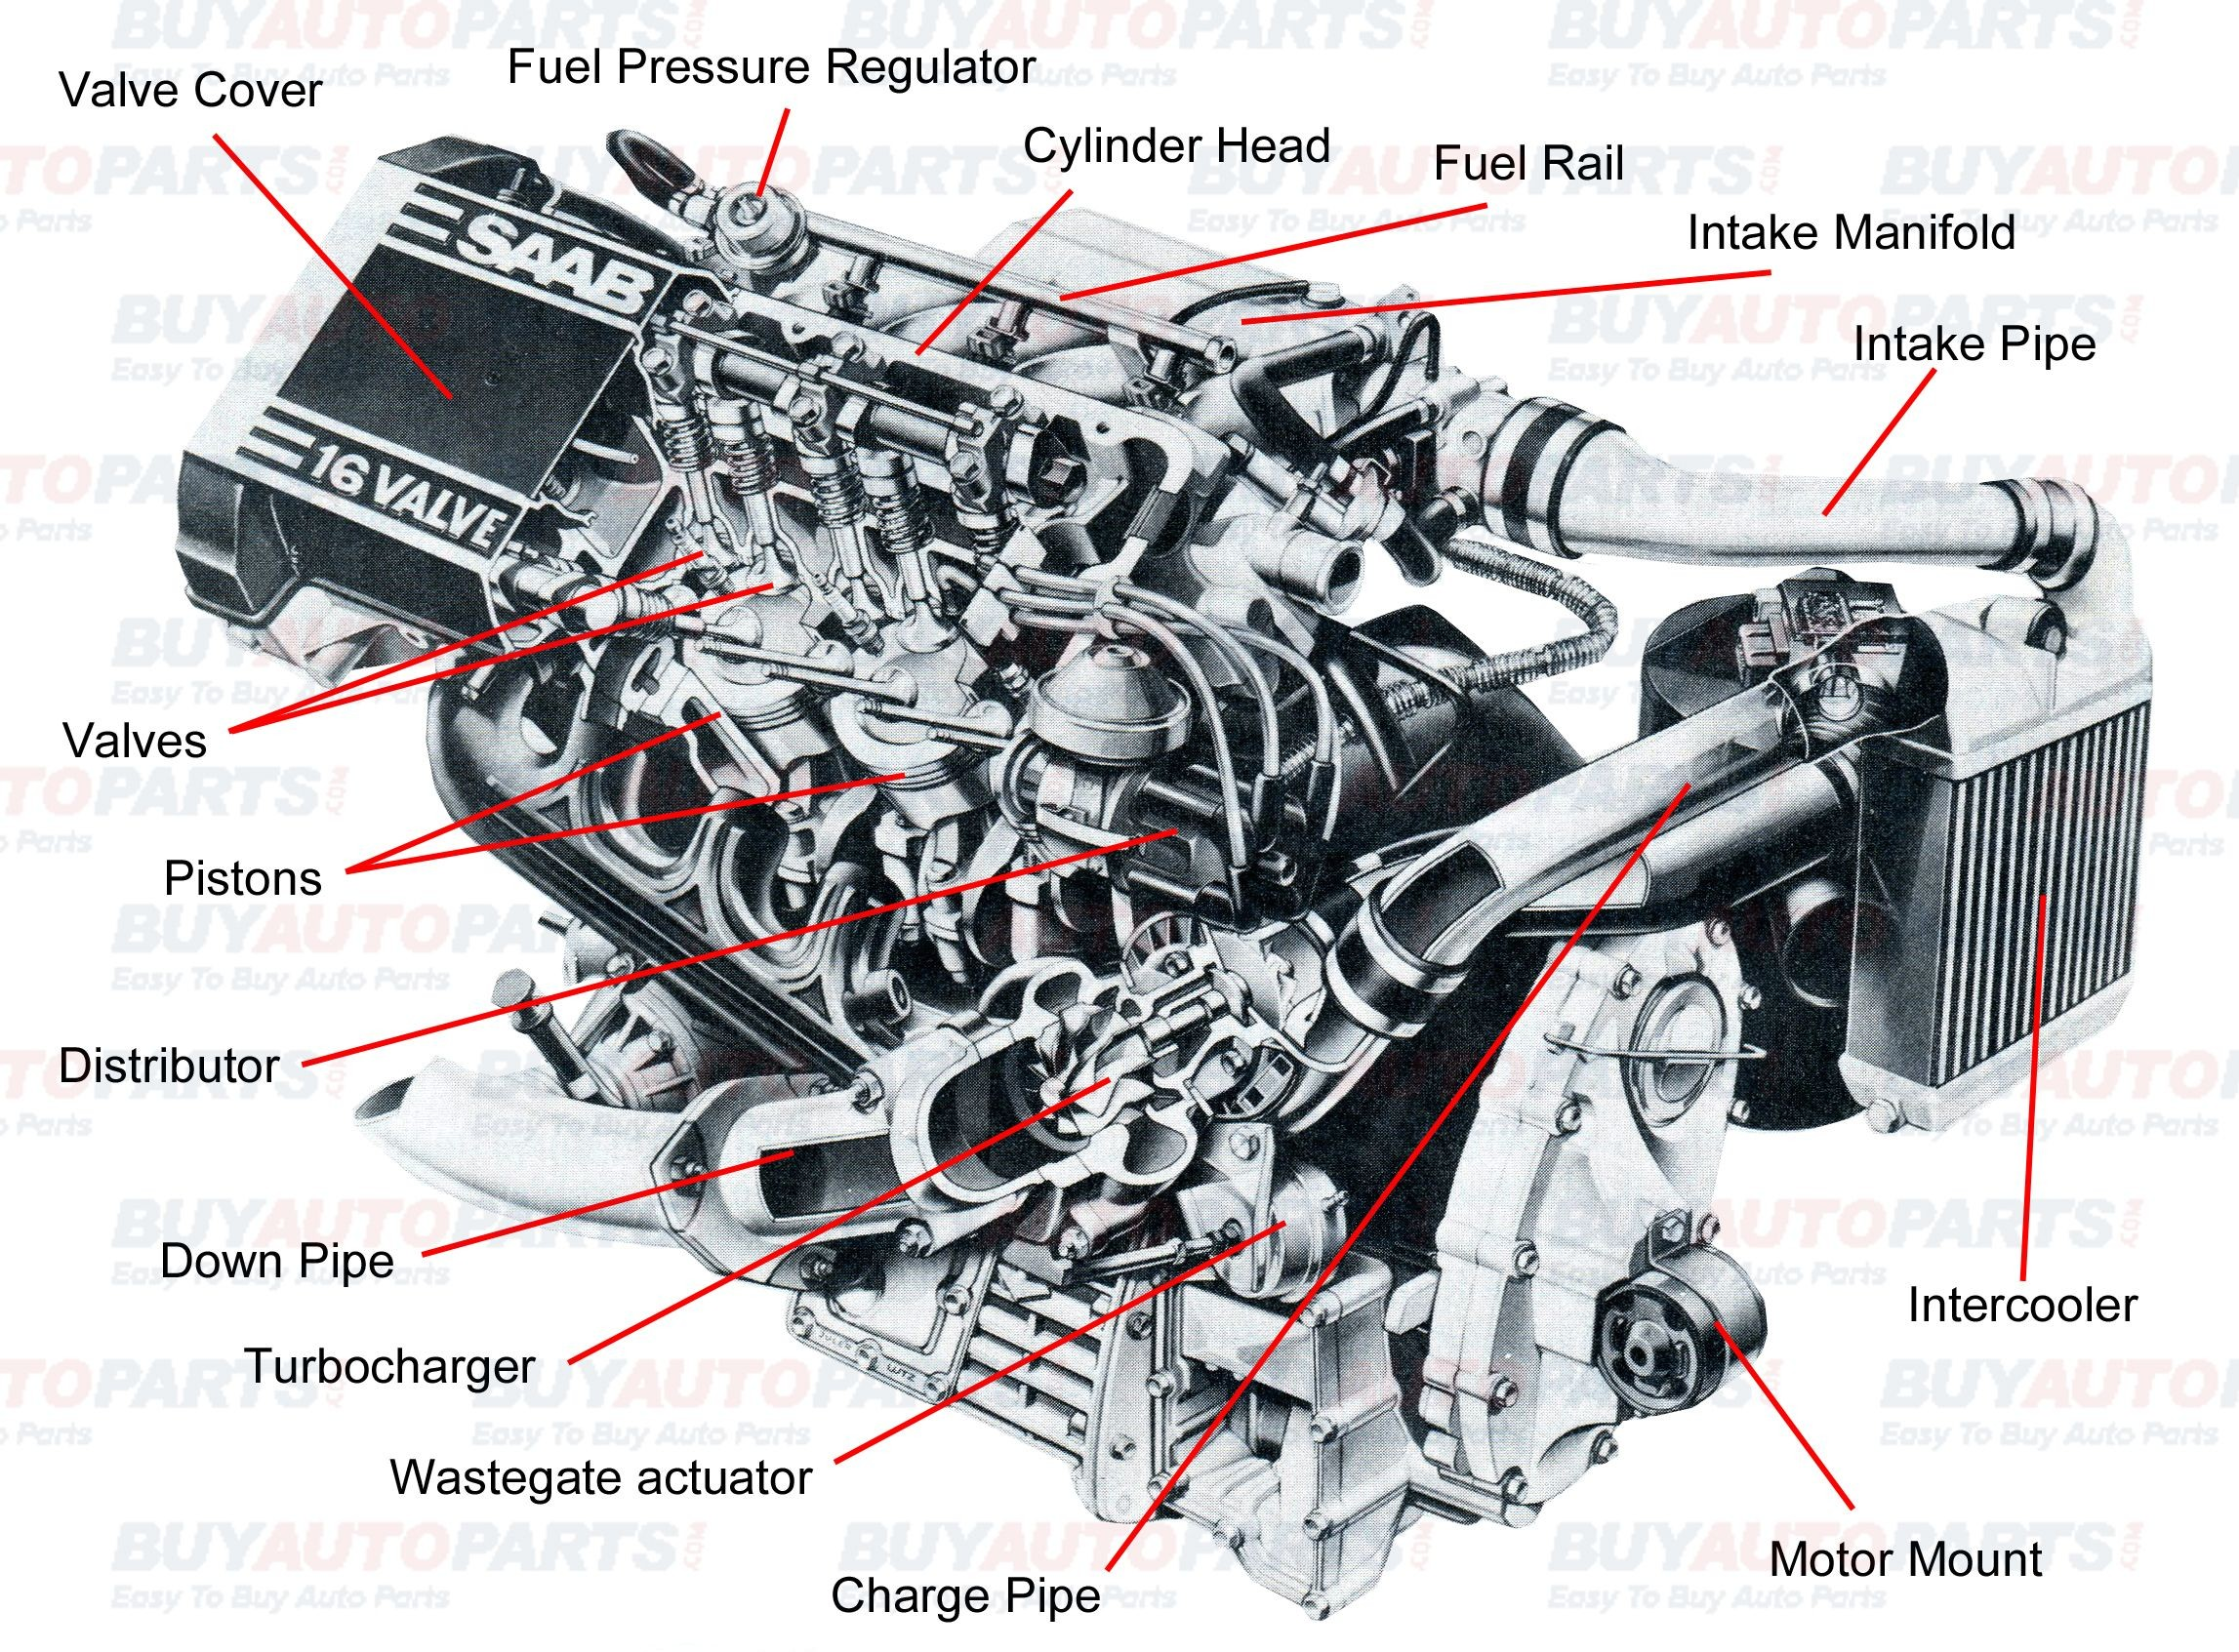 Names Of Car Parts Diagram | My Wiring DIagram